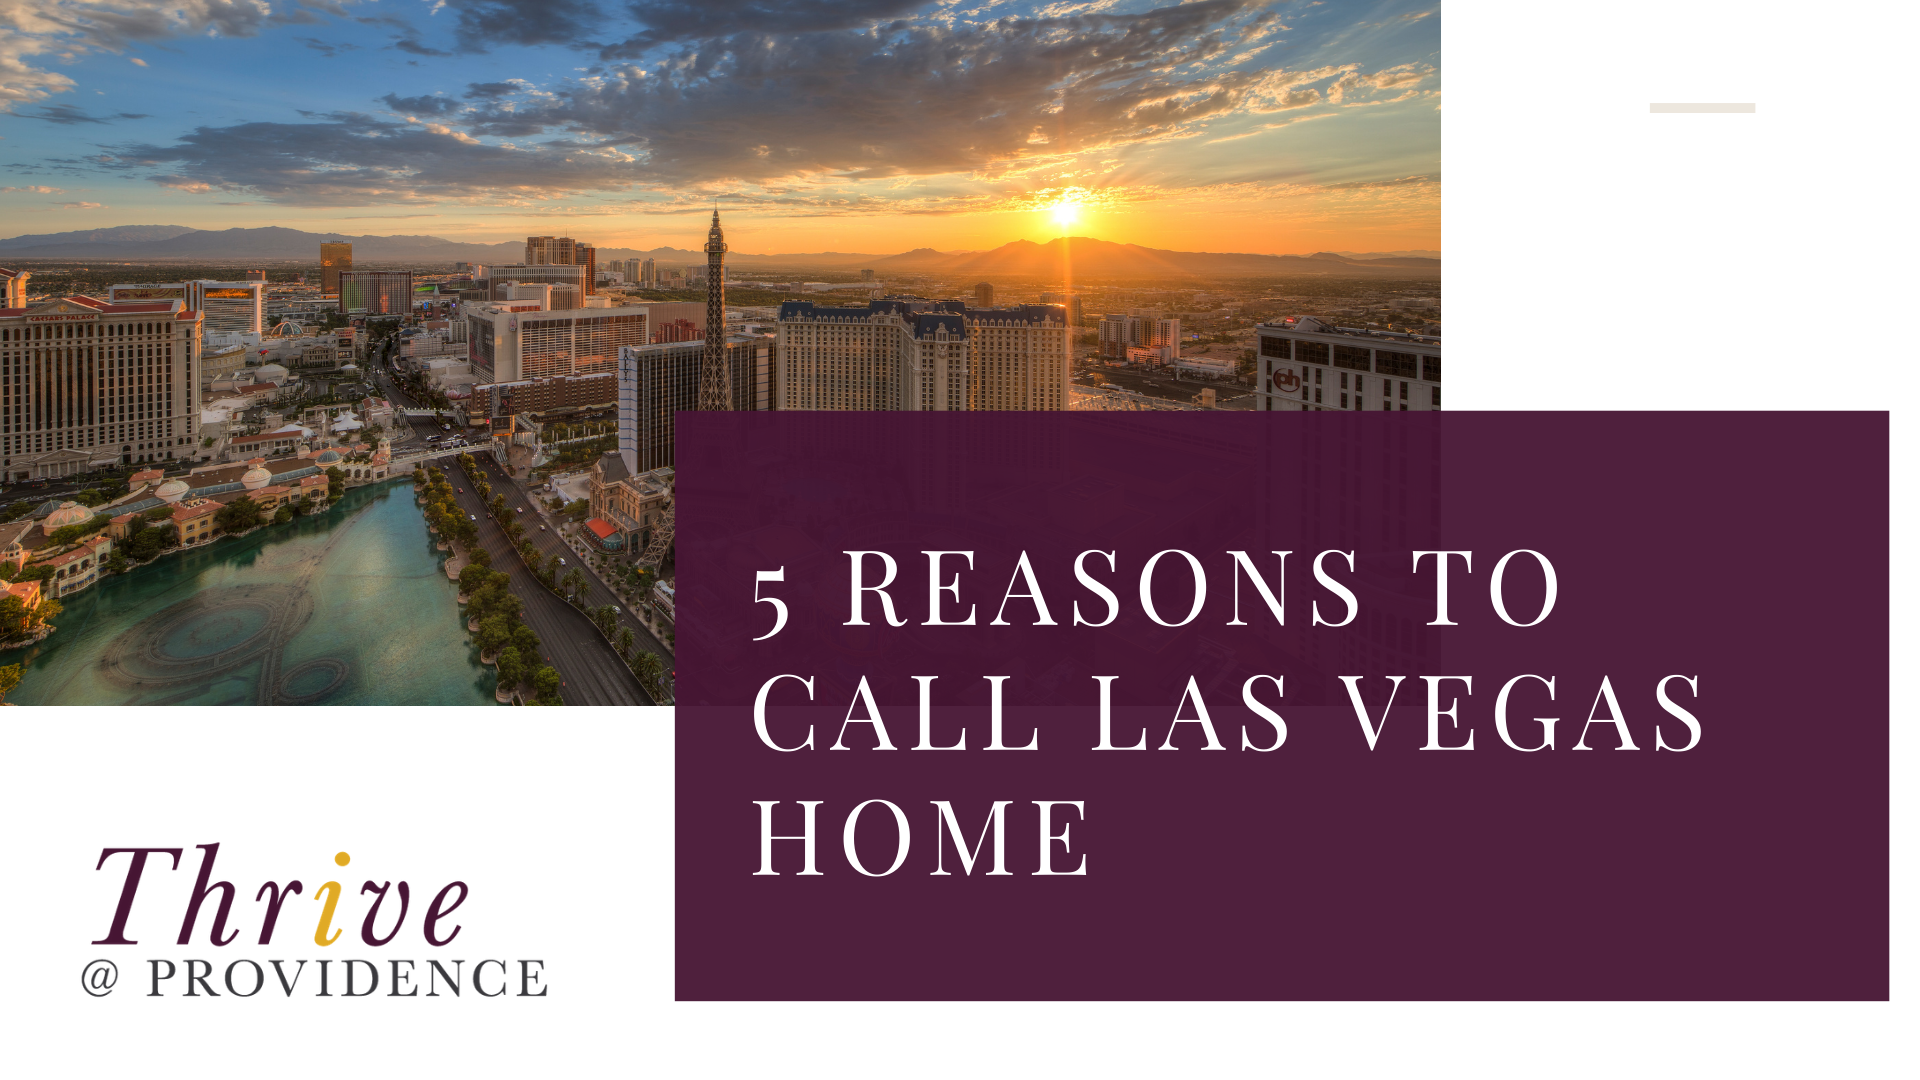 You should move to las vegas